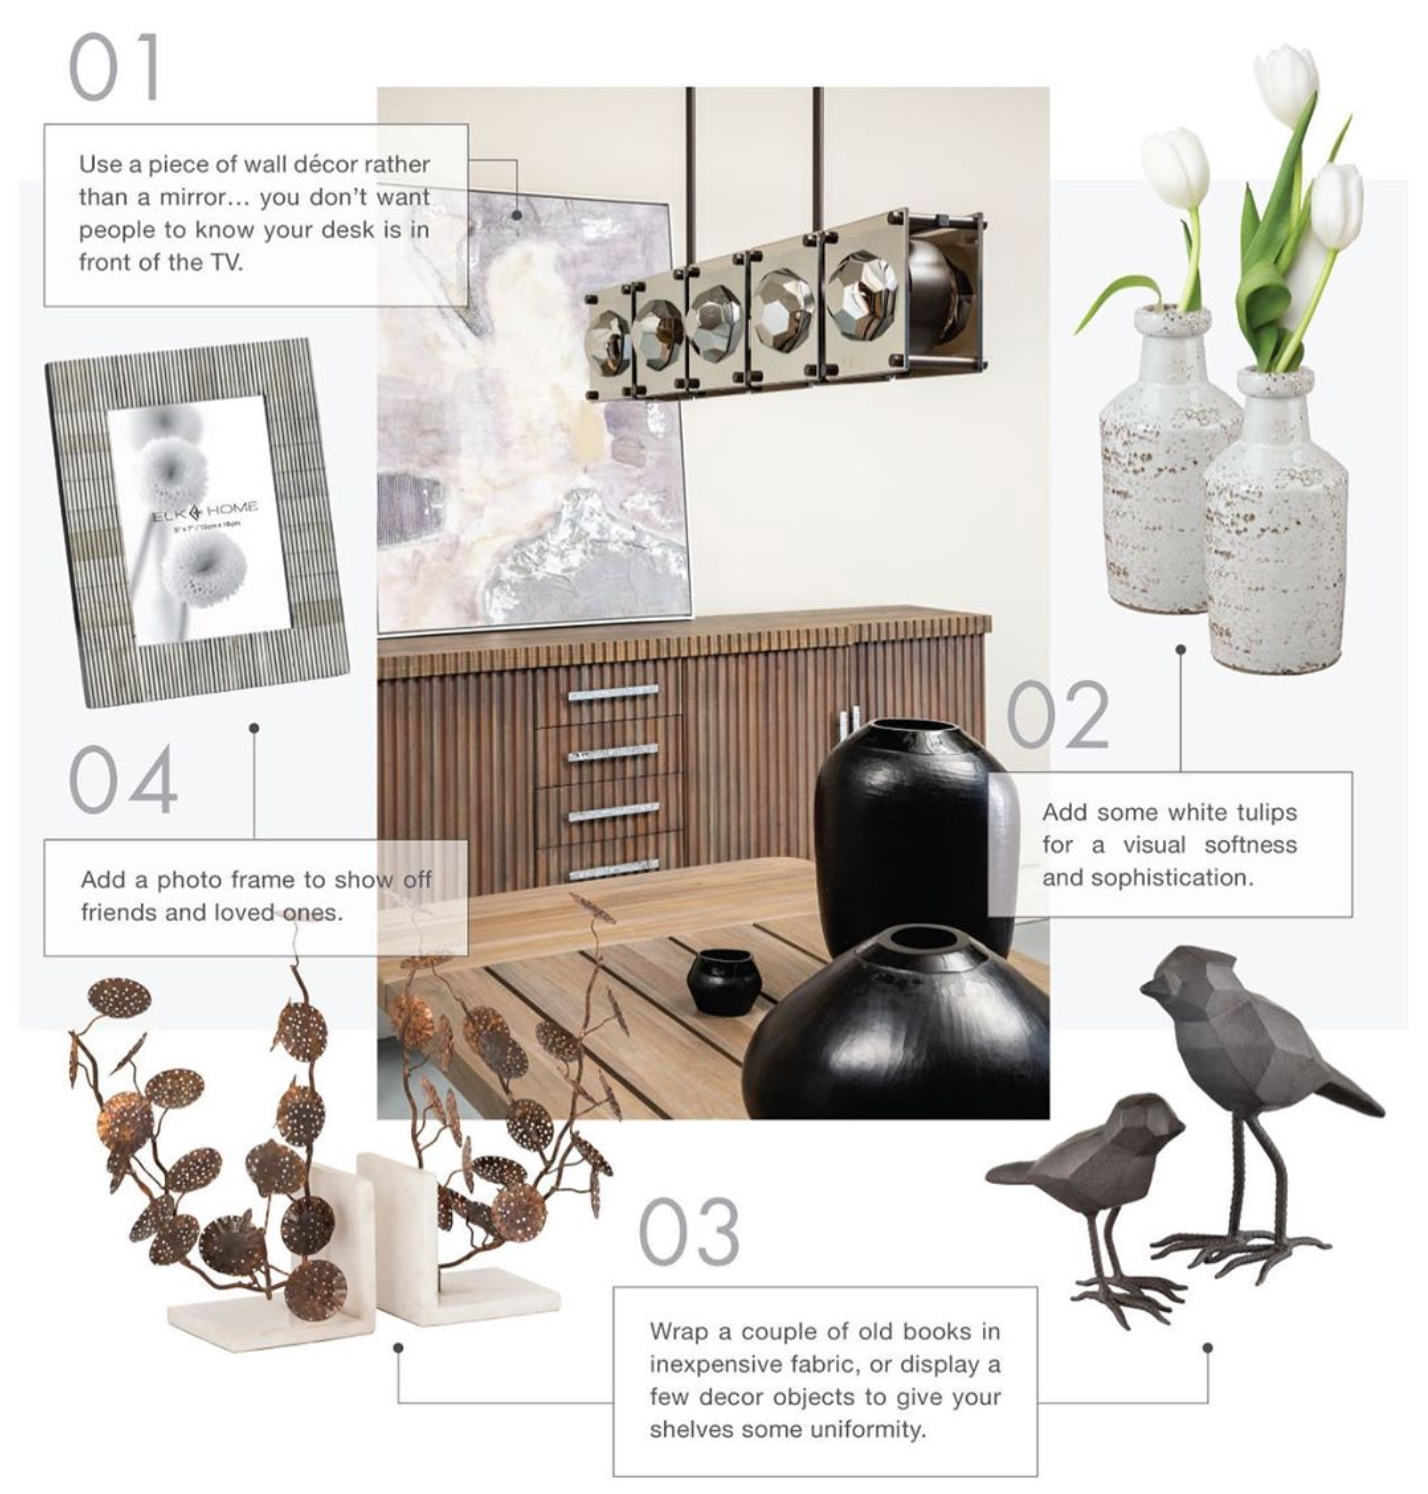 I Like These Tips From Elk Home For Video Conferencing In Style Create A Background That Reflects Your Own Personal Sty In 2020 Rustic White Elk Home Warm And Cozy